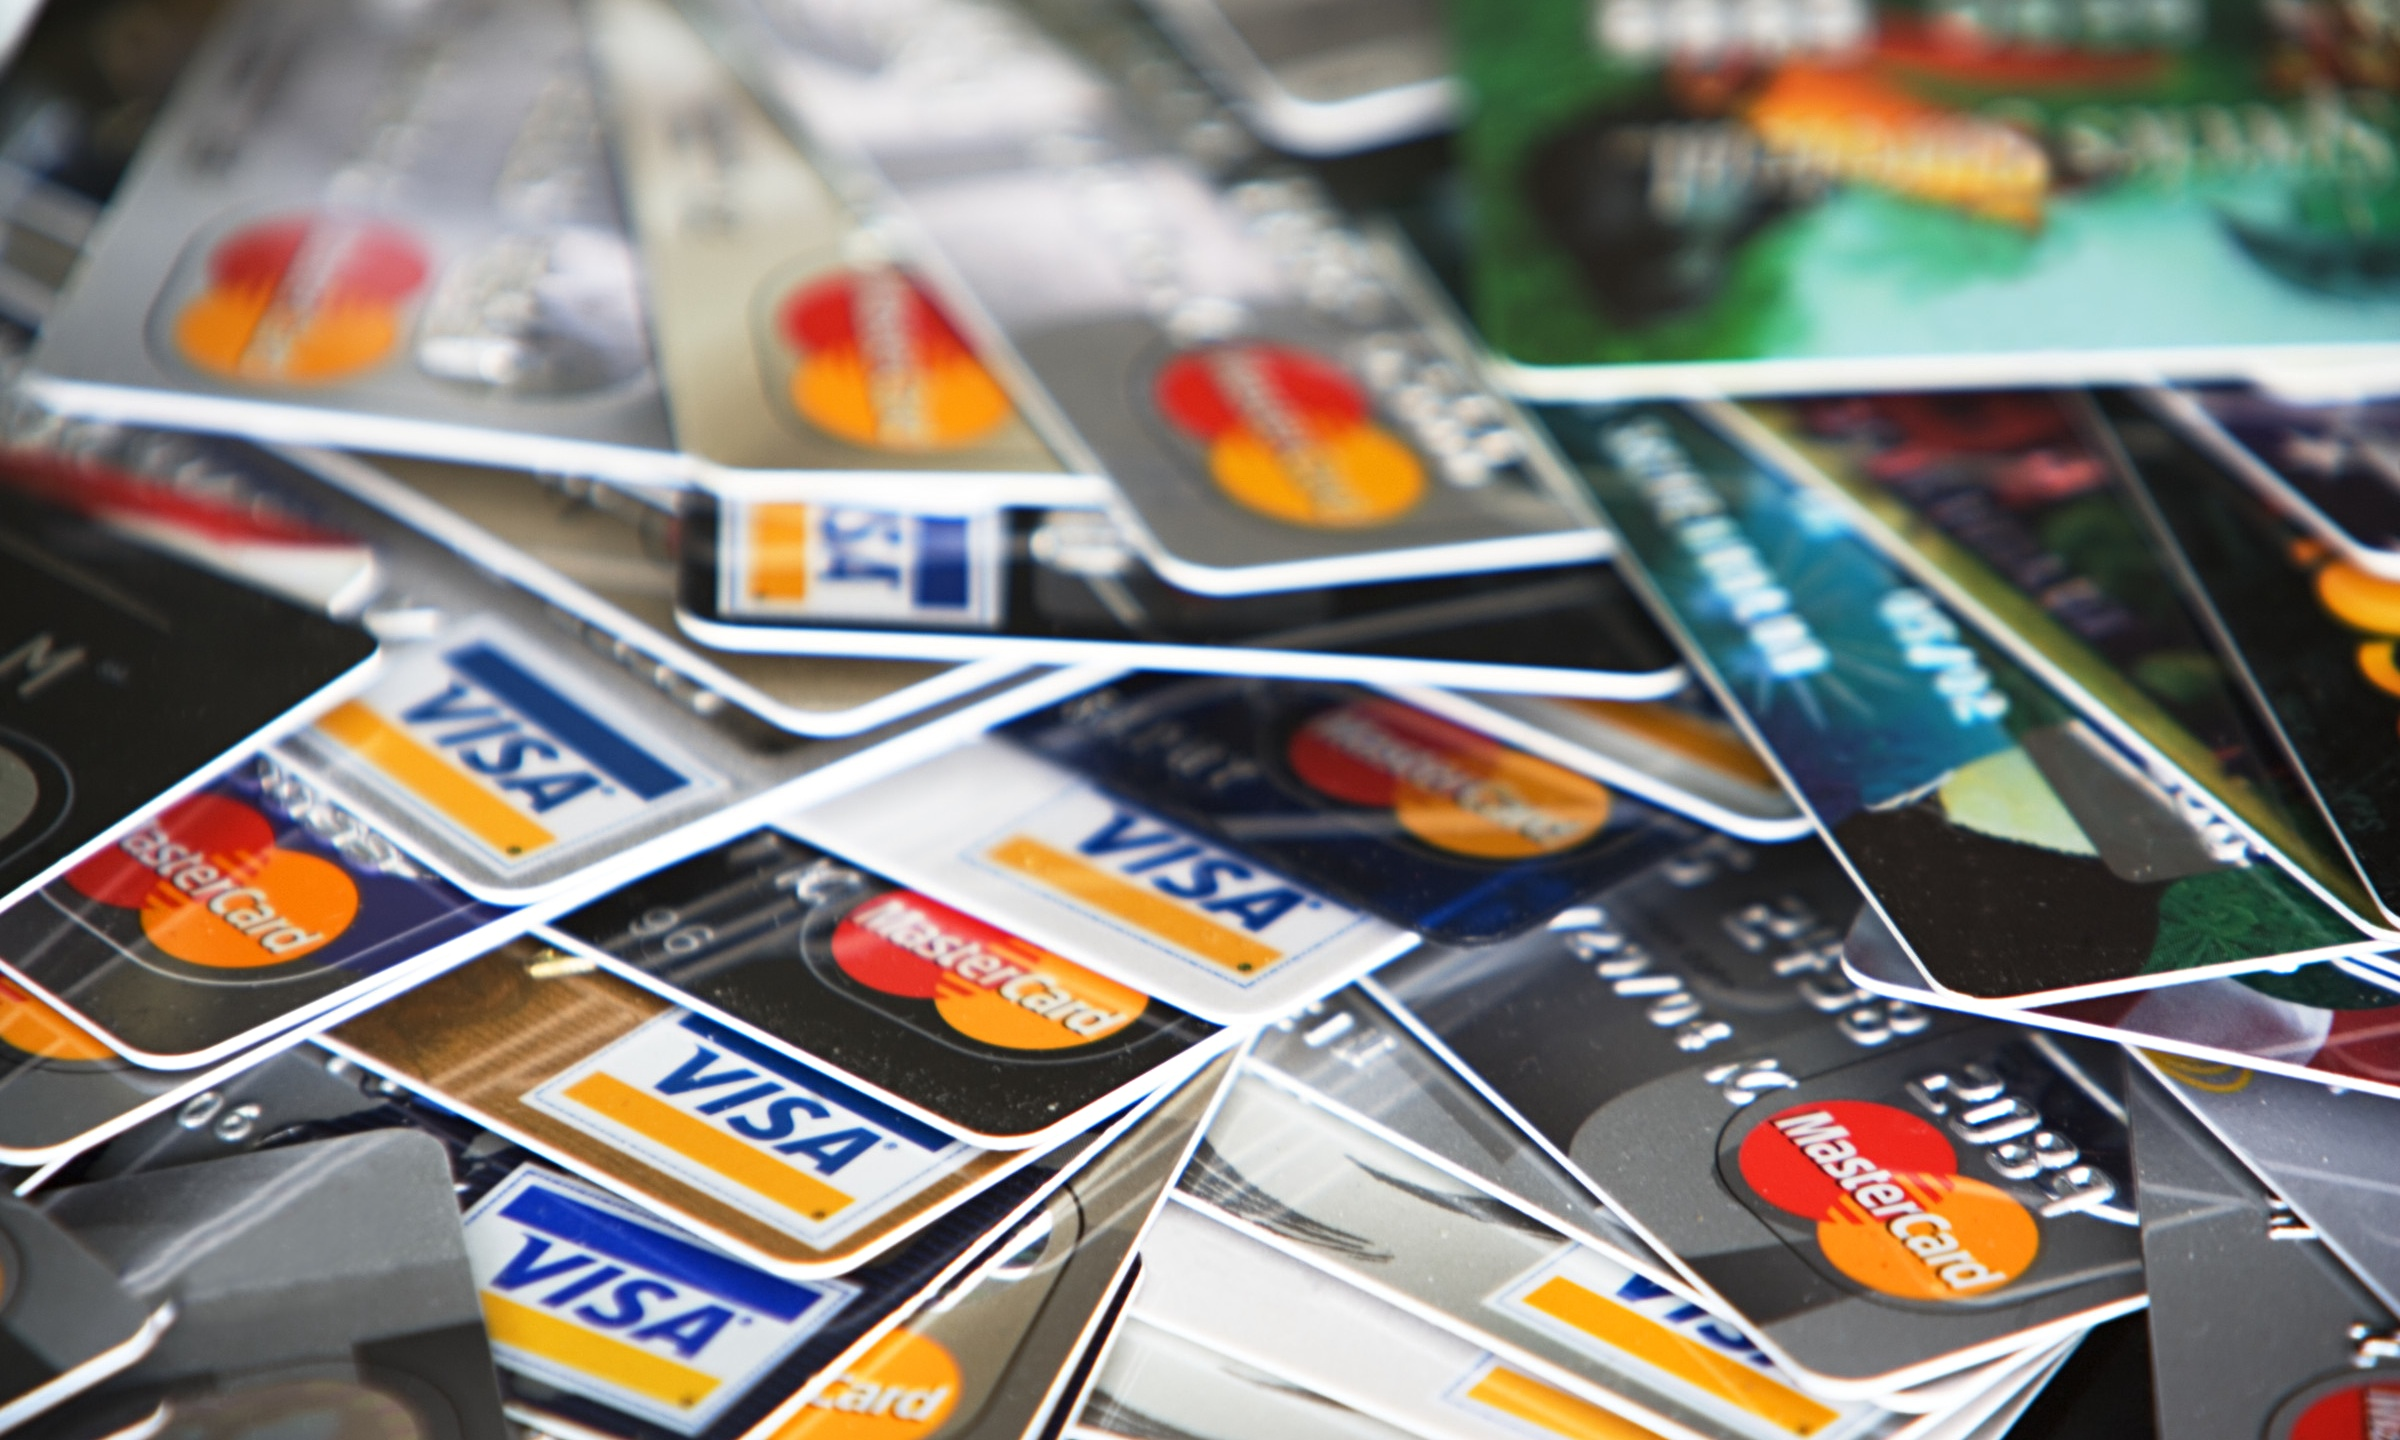 3 Tips for Overcoming A Credit Card Addiction